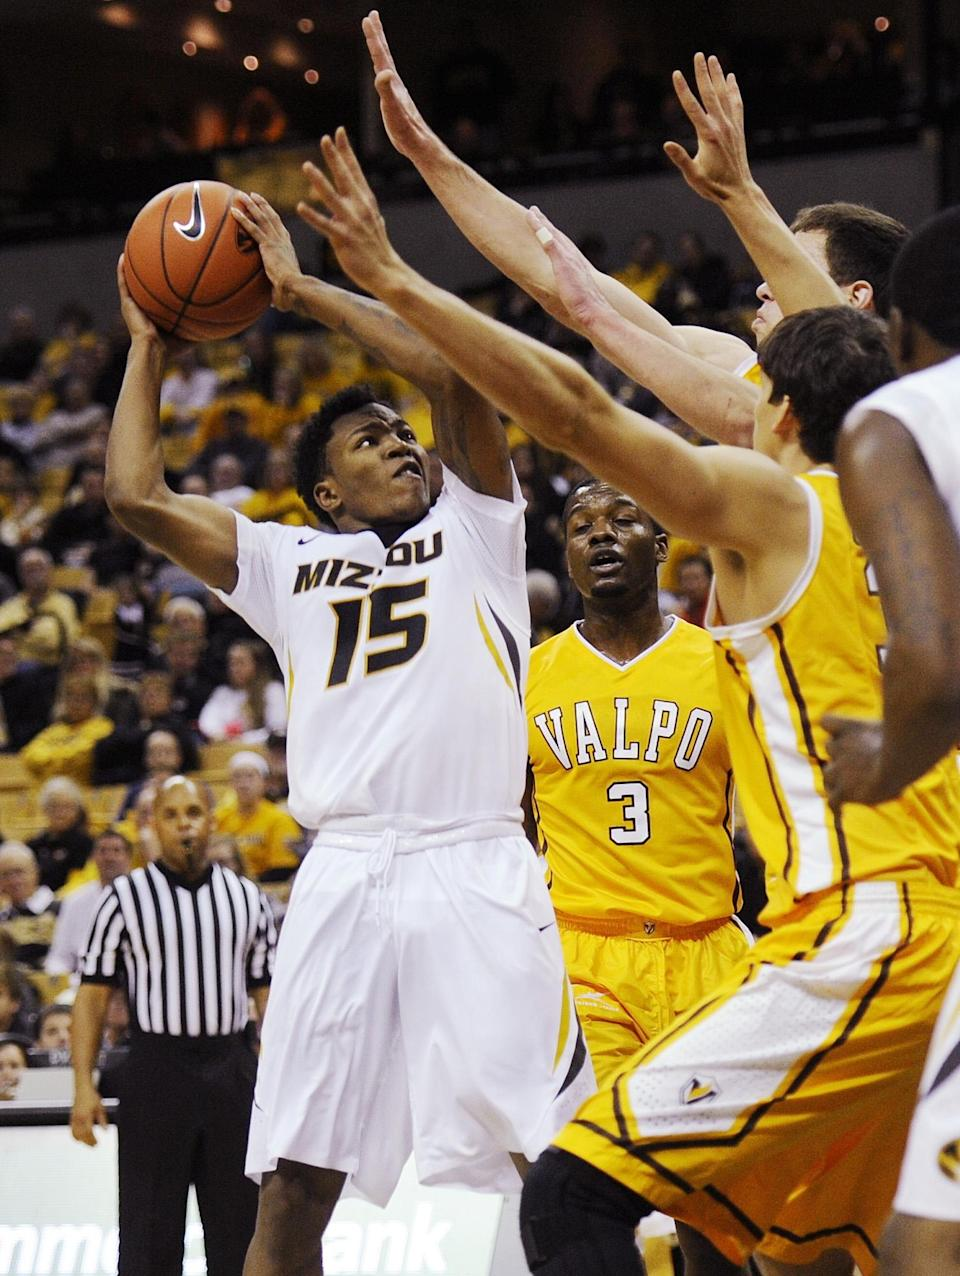 Missouri's Wes Clark, left, shoots over several Valparaiso players during the first half of an NCAA college basketball game Sunday, Nov. 16, 2014, in Columbia, Mo. (AP Photo/L.G. Patterson)